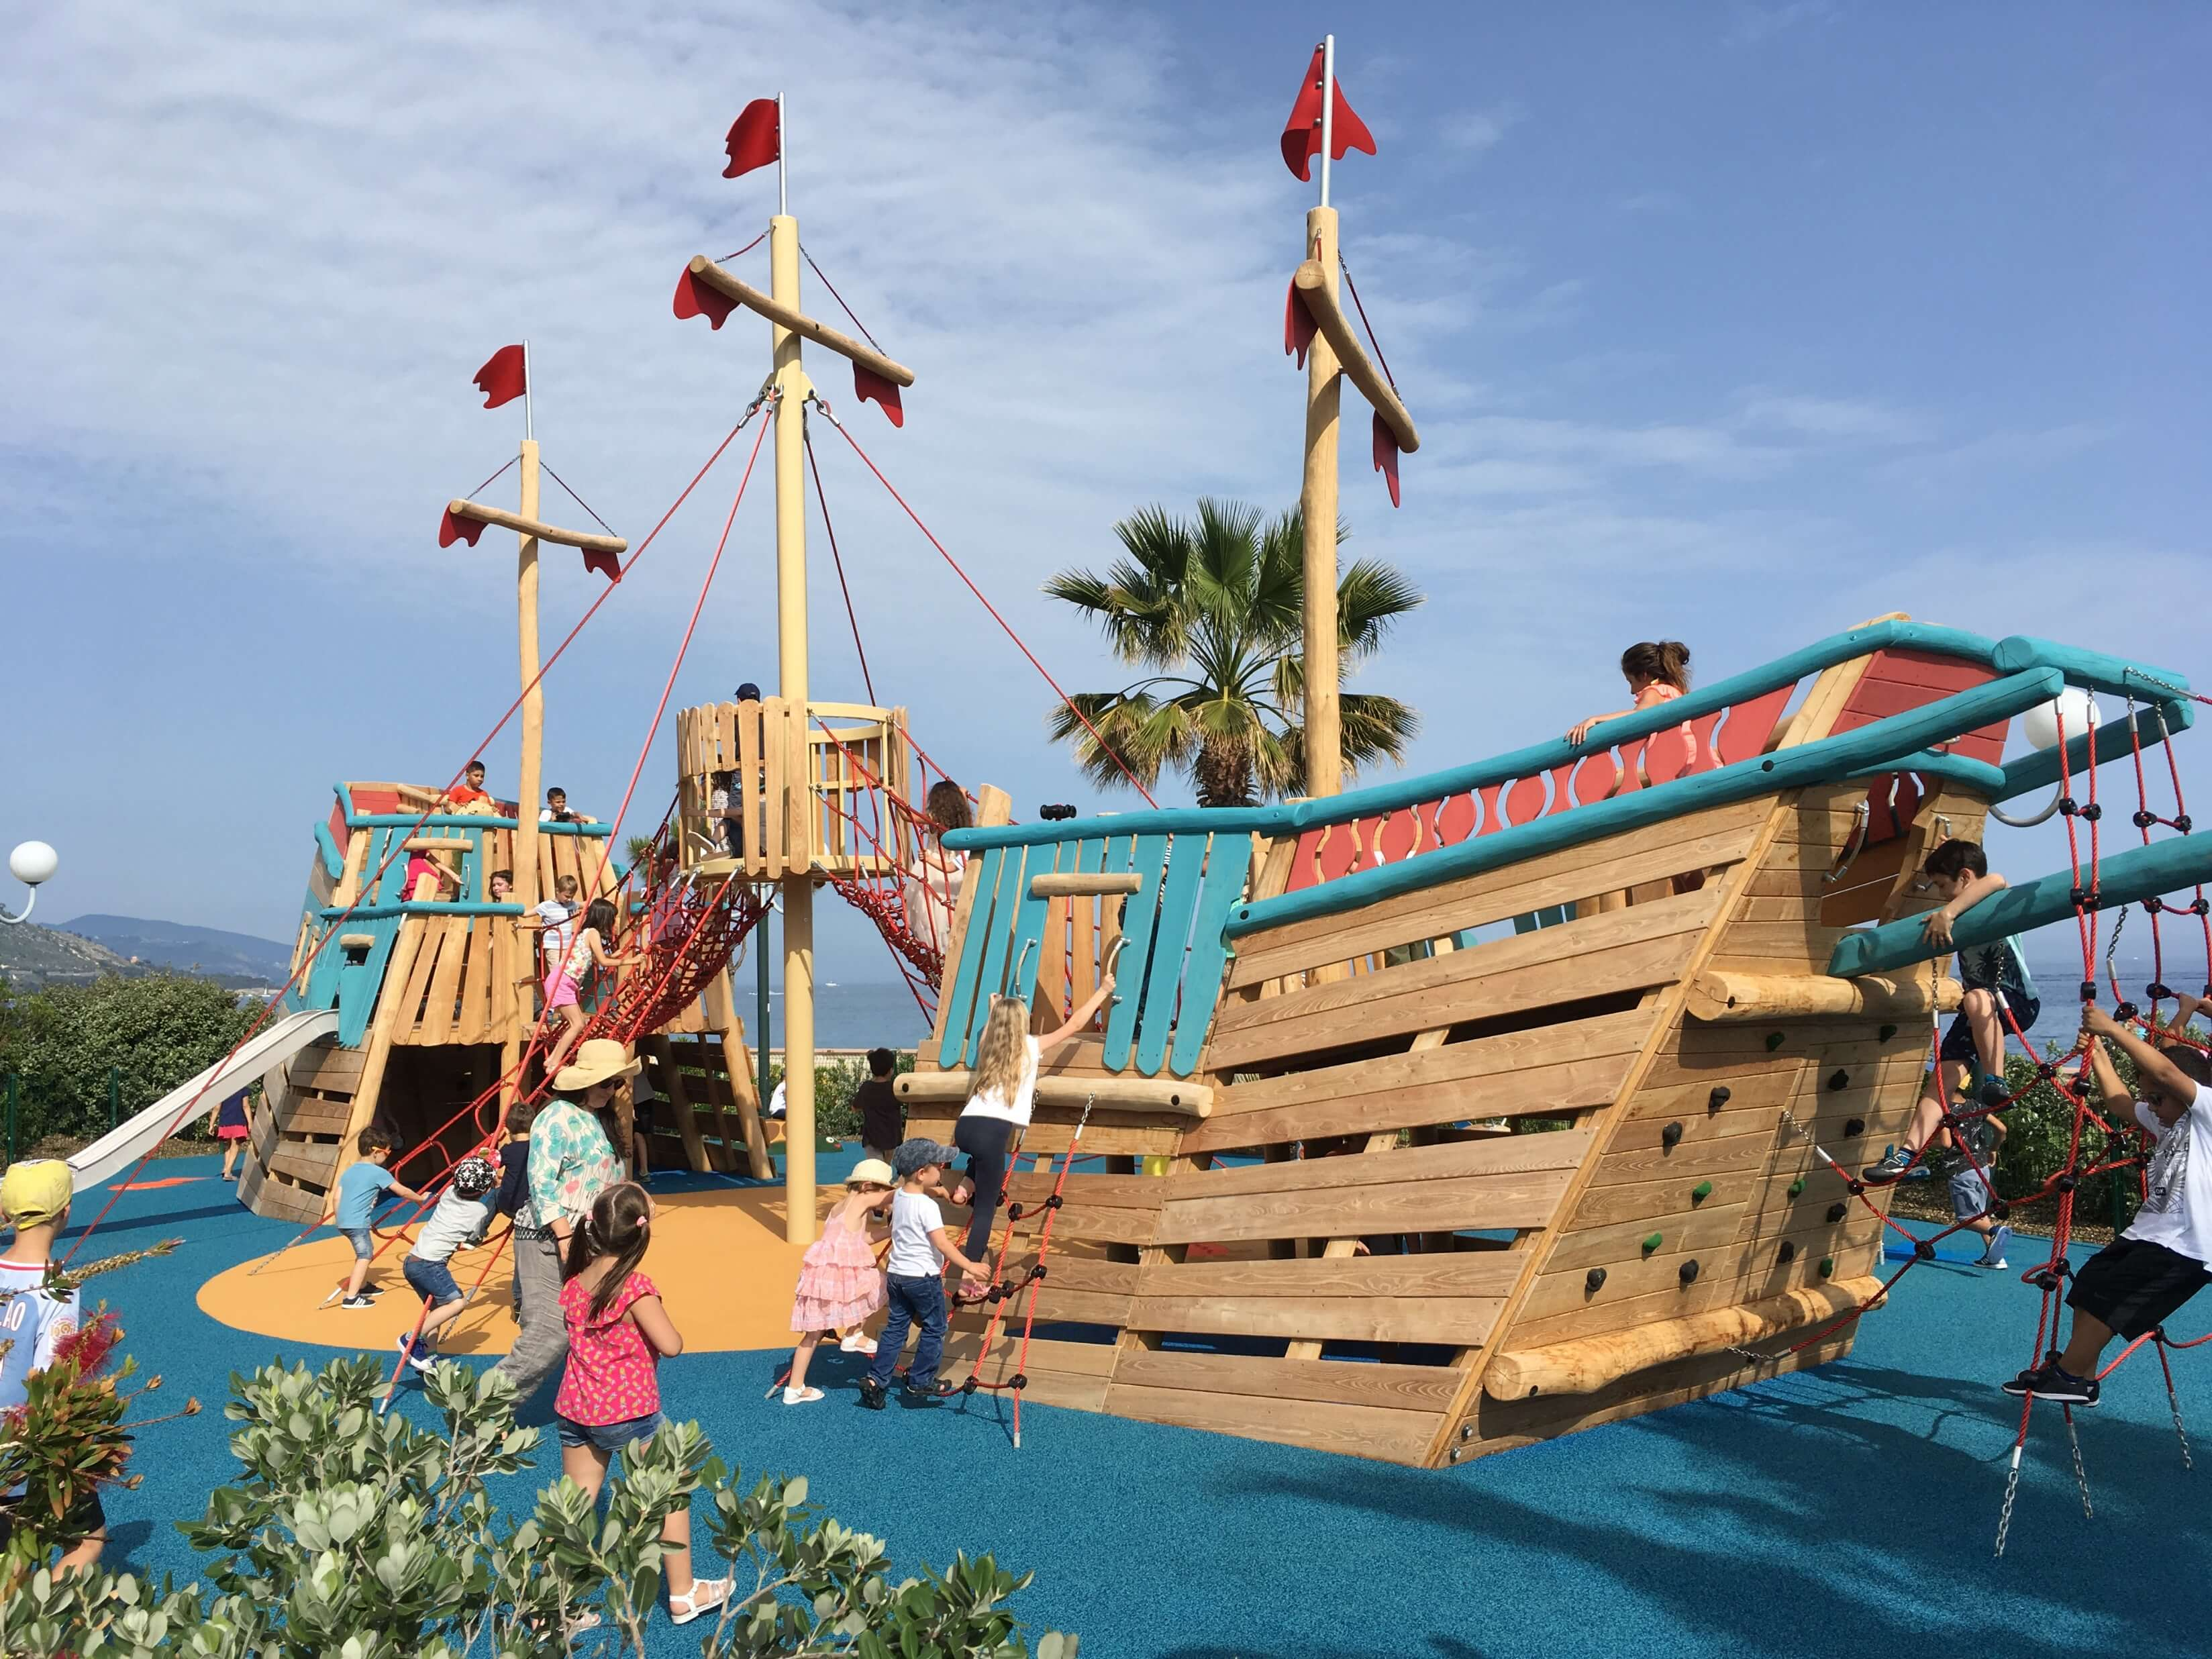 Nave dell'esploratore, X-large